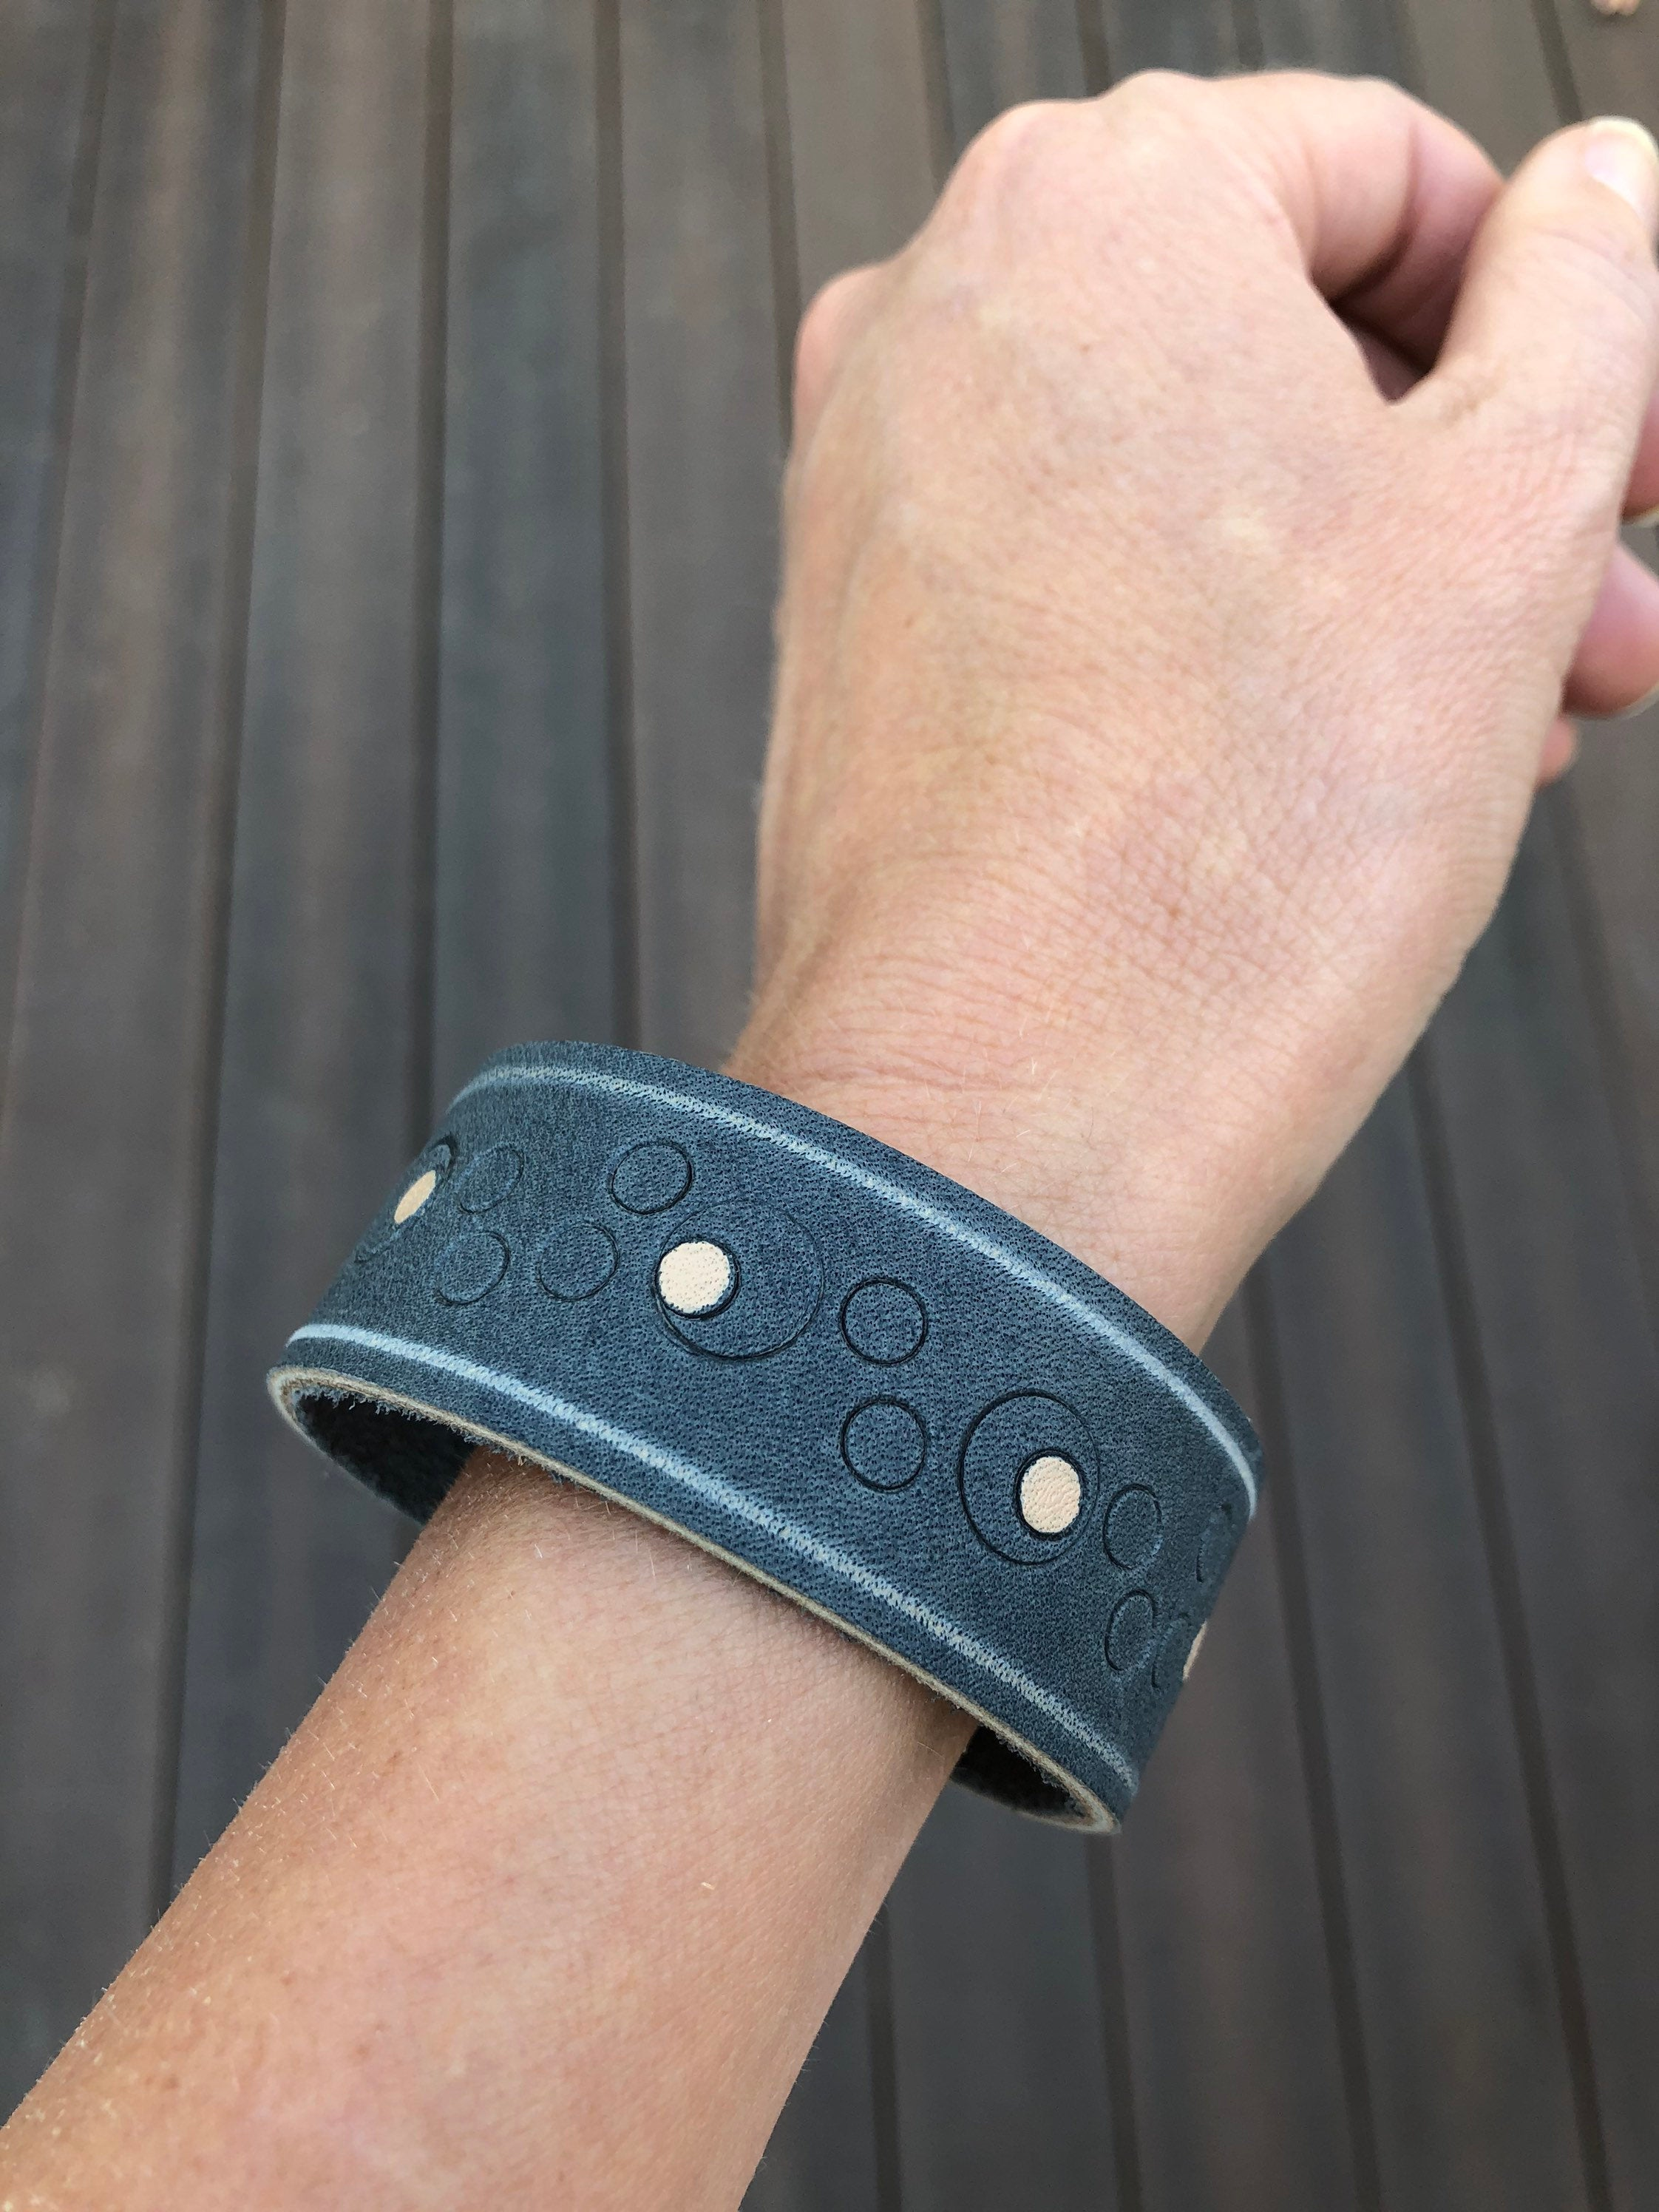 Blue leather cuff bracelet with circular pattern detail shown on model's wrist